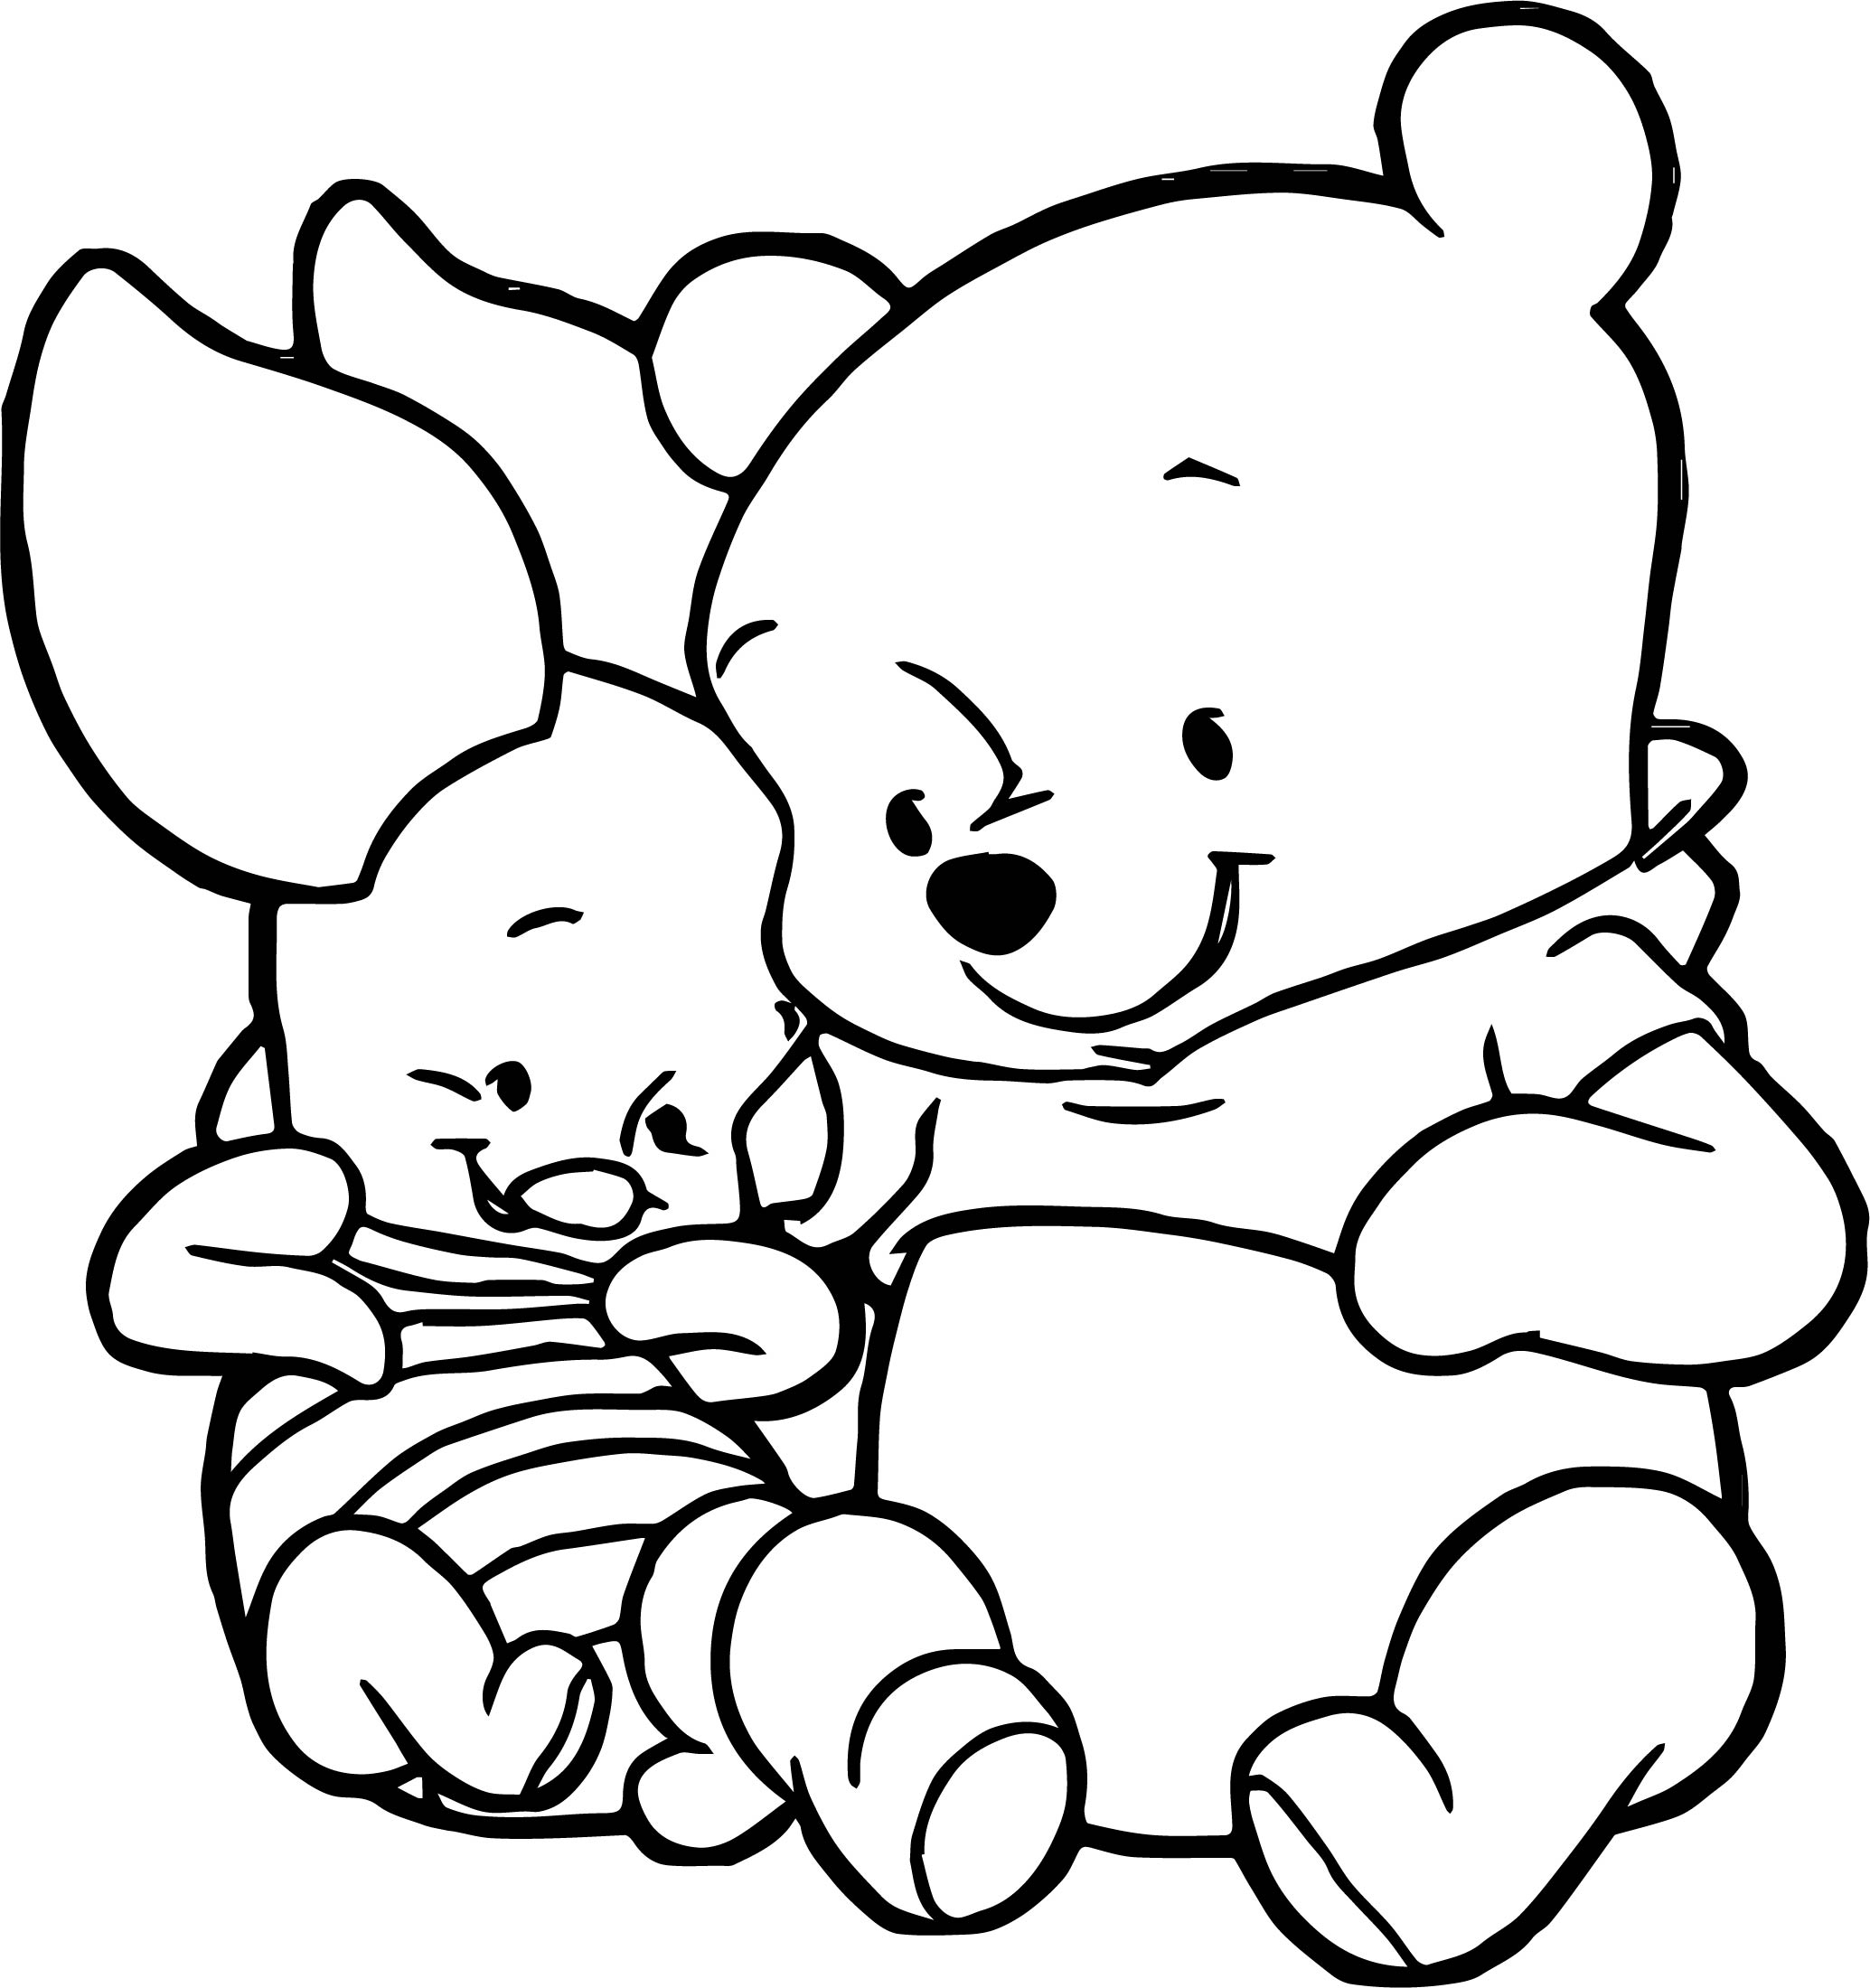 Cute baby piglet winnie the pooh coloring page for Pooh and piglet coloring pages